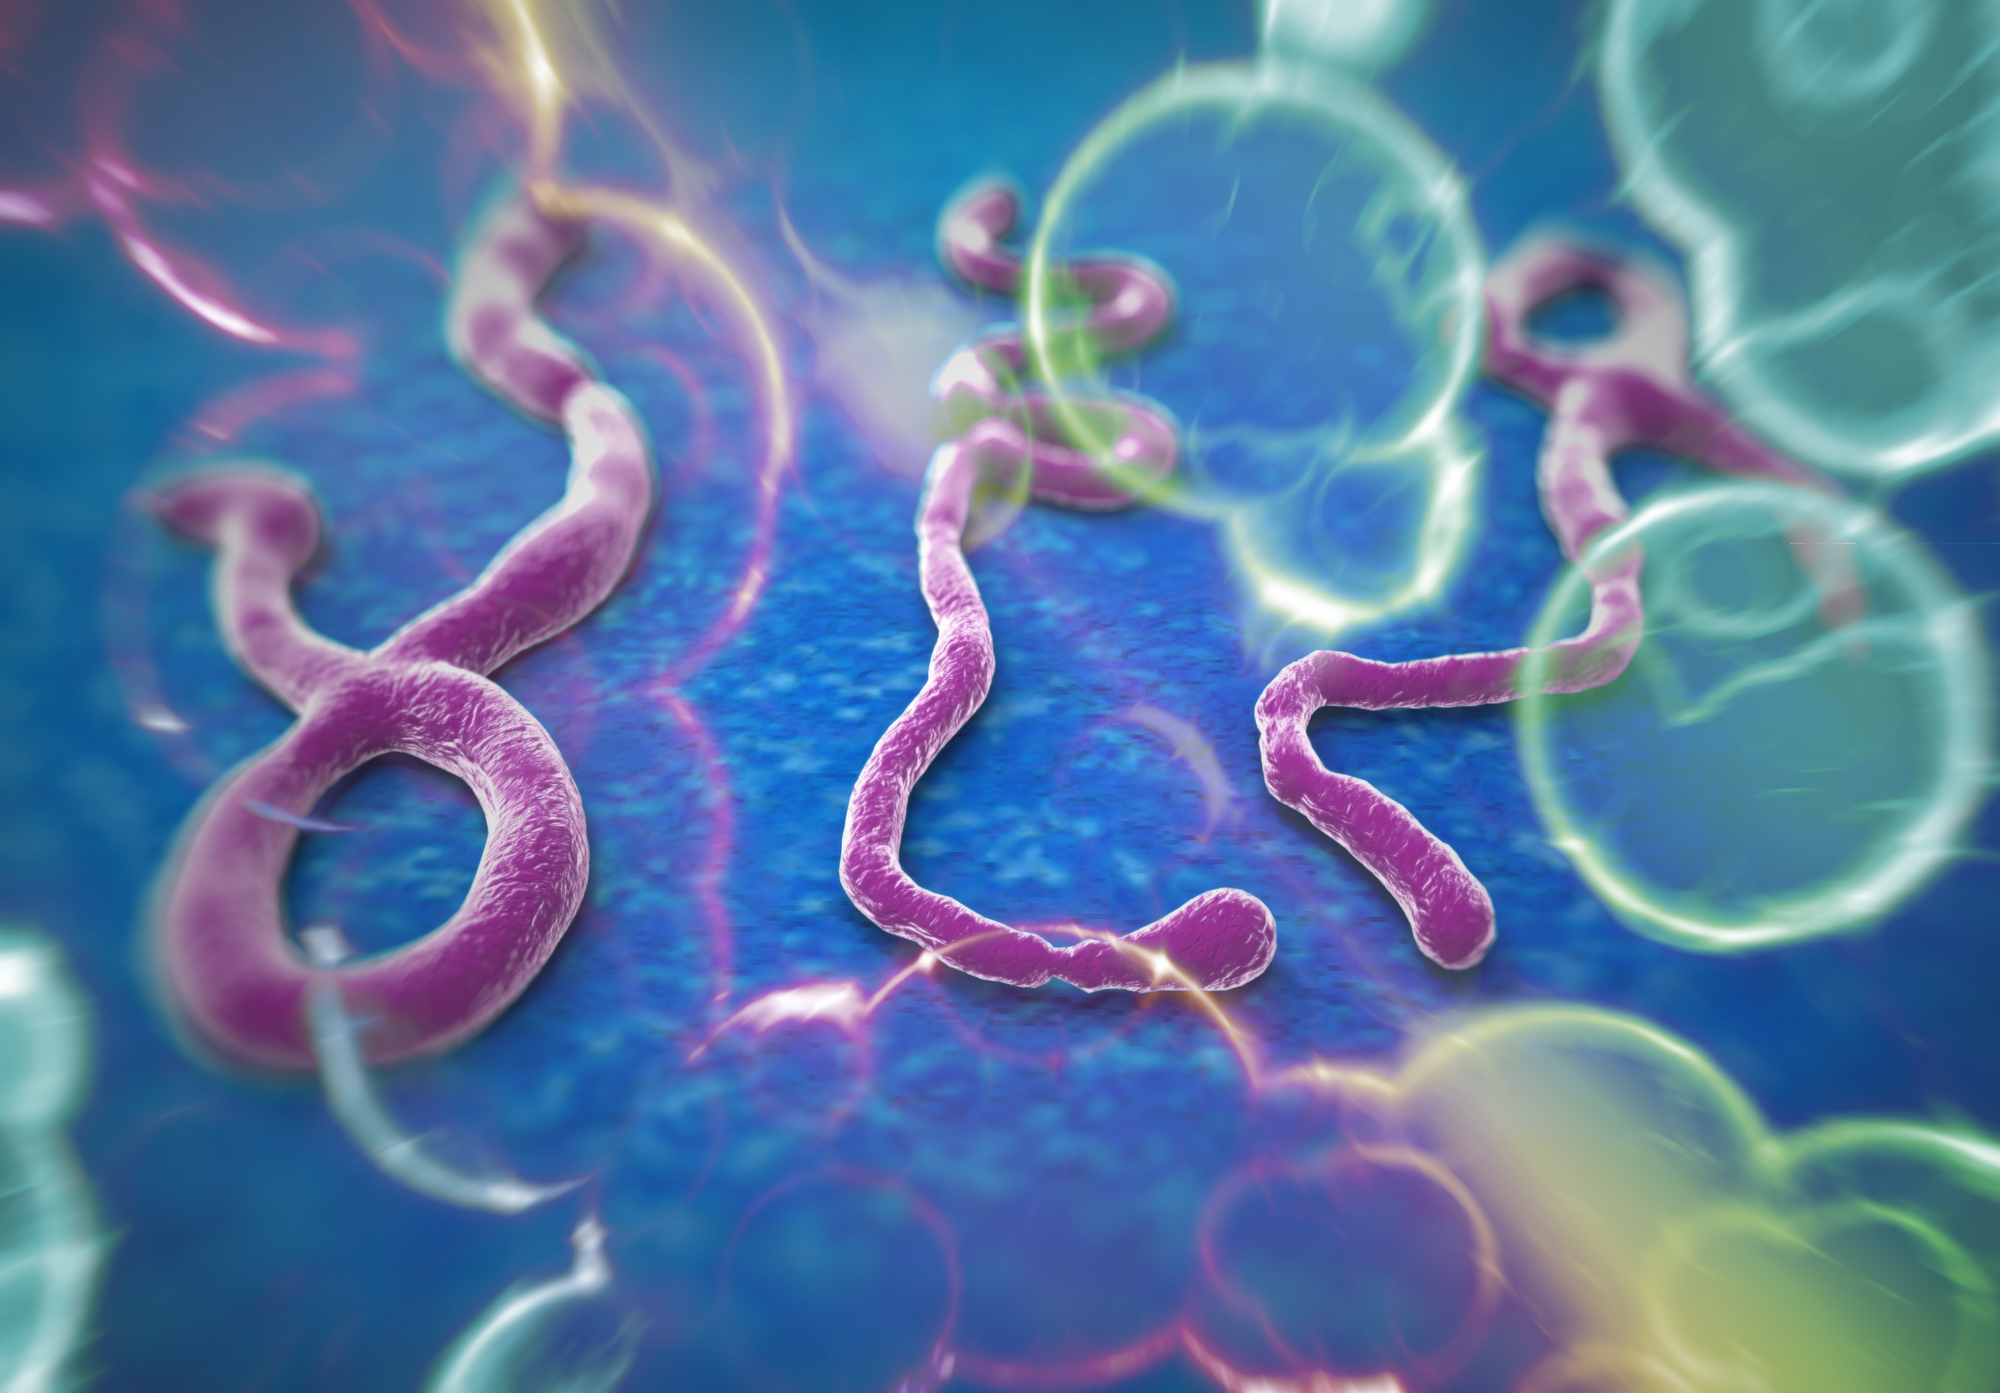 The Ebola virus has emerged as an unlikely potential ally in the fight against deadly brain cancer